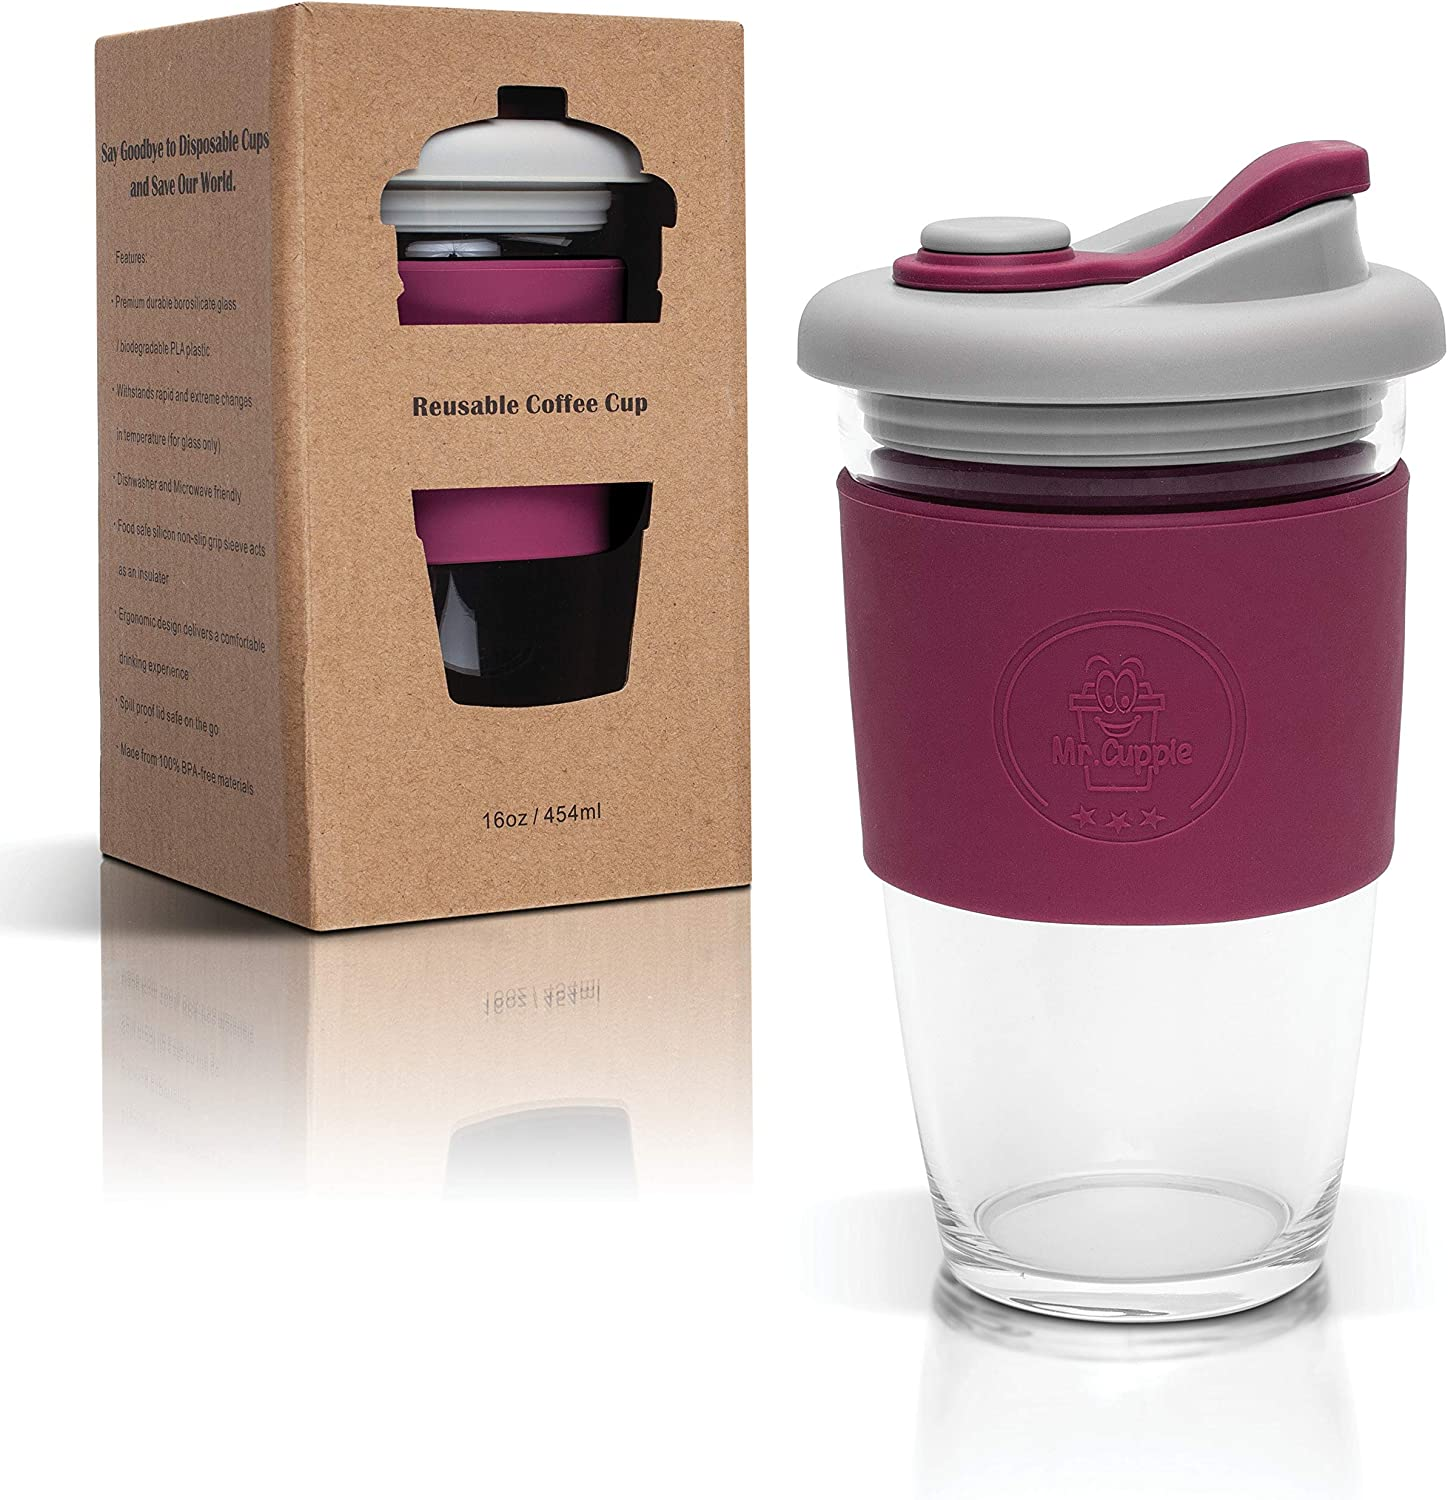 Mr.Cuppie Glass Reusable Coffee Cup with Lid, Travel Mug with Non-slip Sleeve Dishwasher and Microwave Friendly, Portable Glass Tumbler Eco-Friendly, 16oz